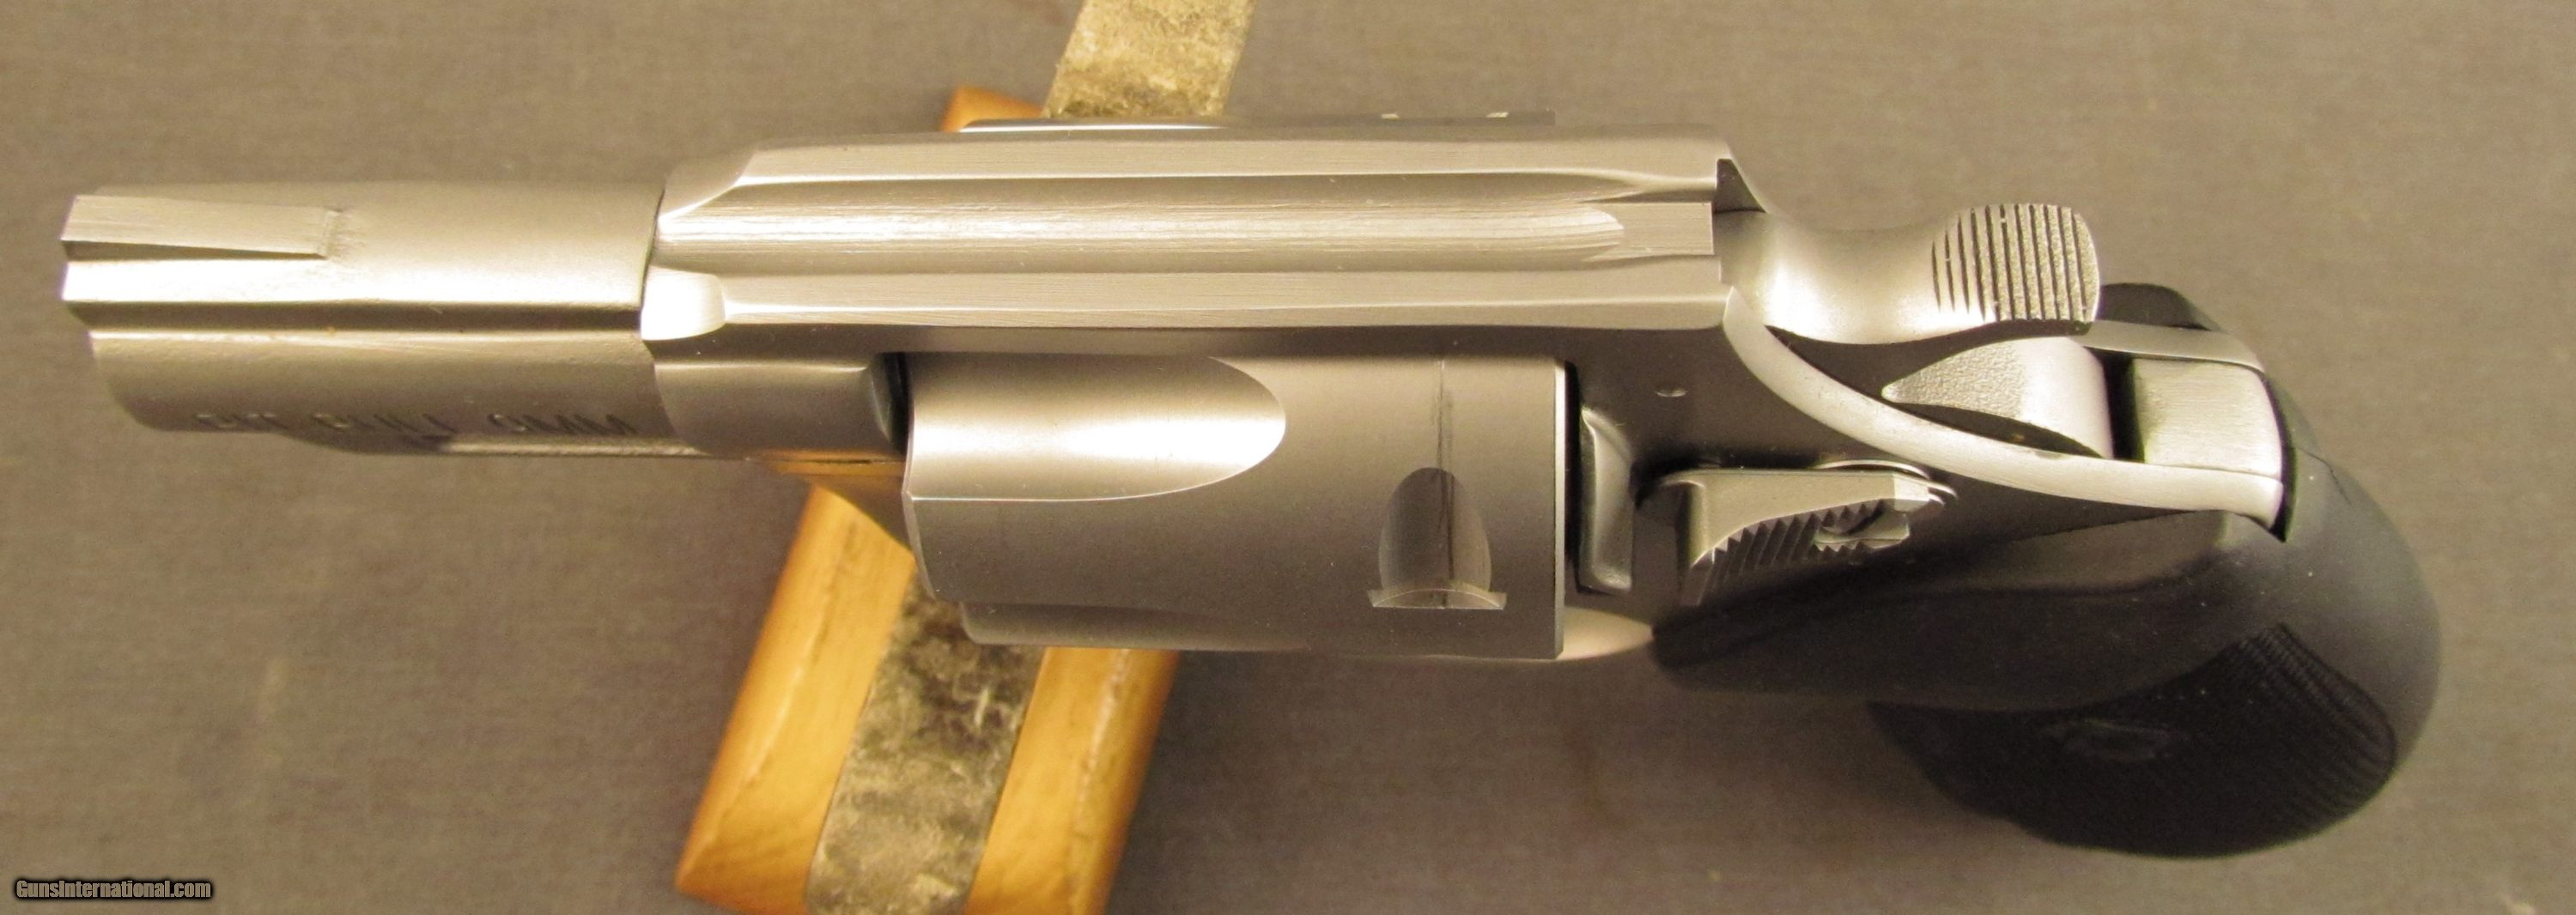 Charter Arms Pitbull 9mm Revolver for sale